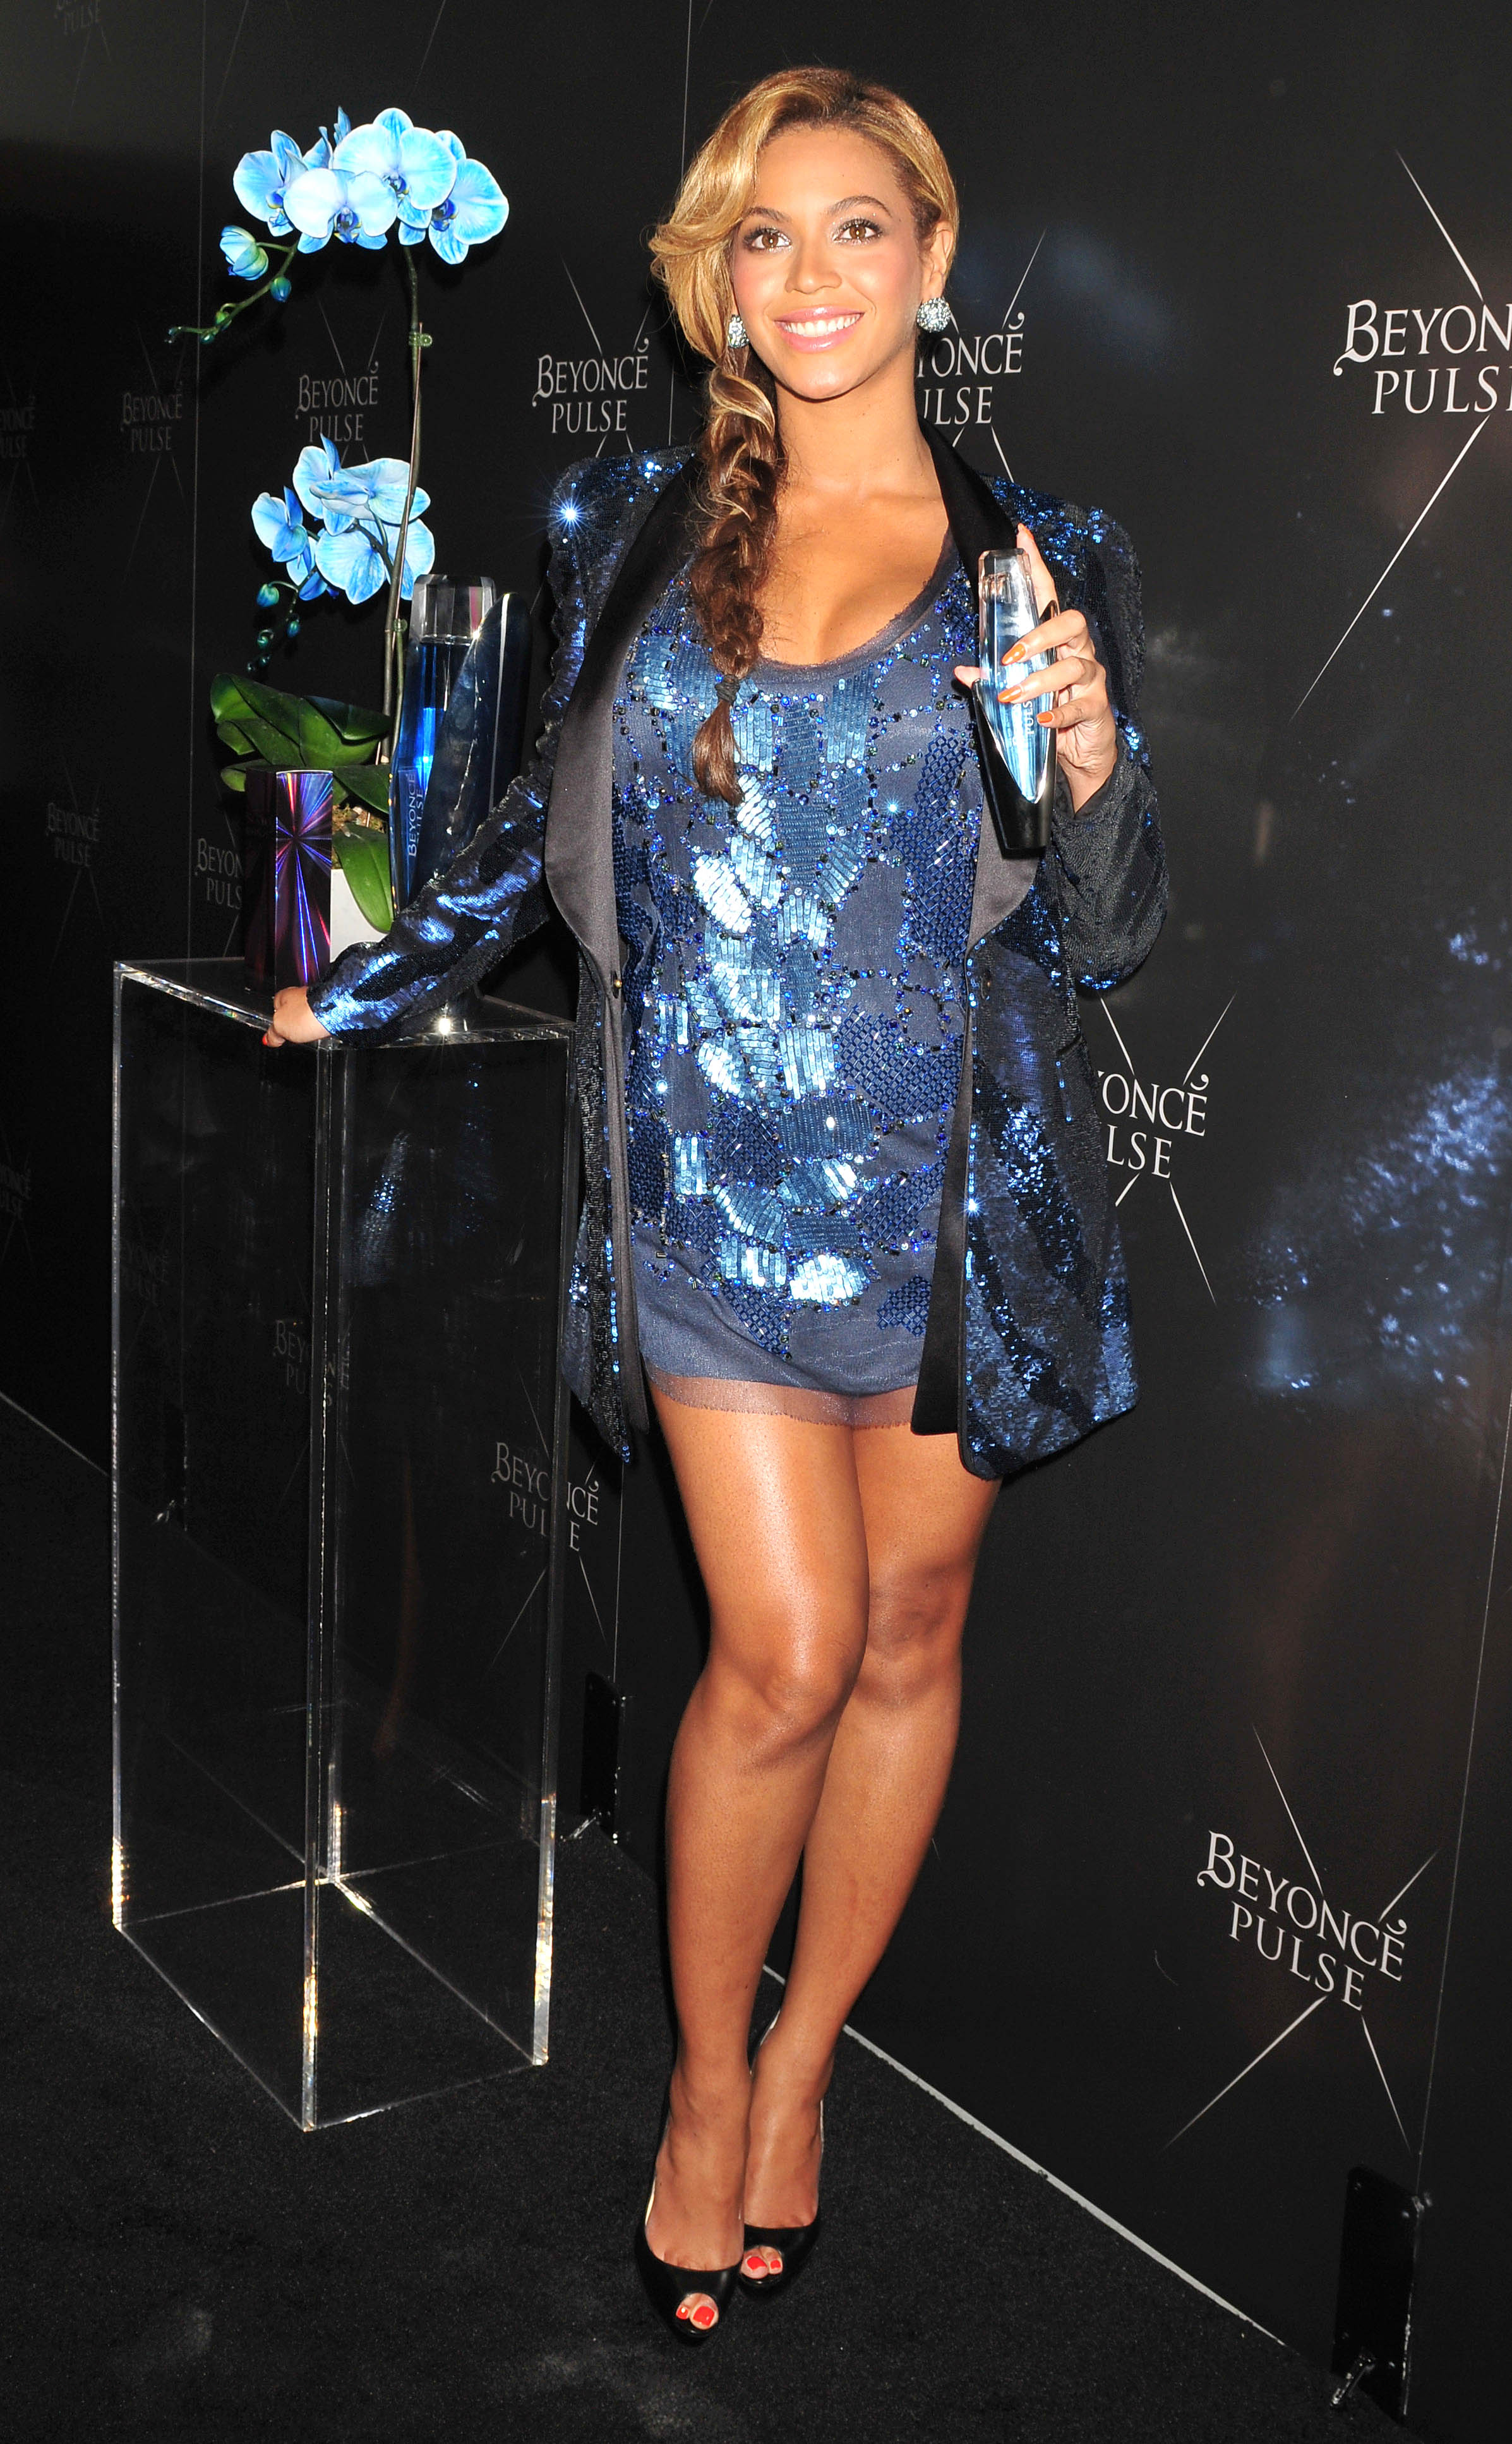 FP 7917602 Beyonce SCP 06 07